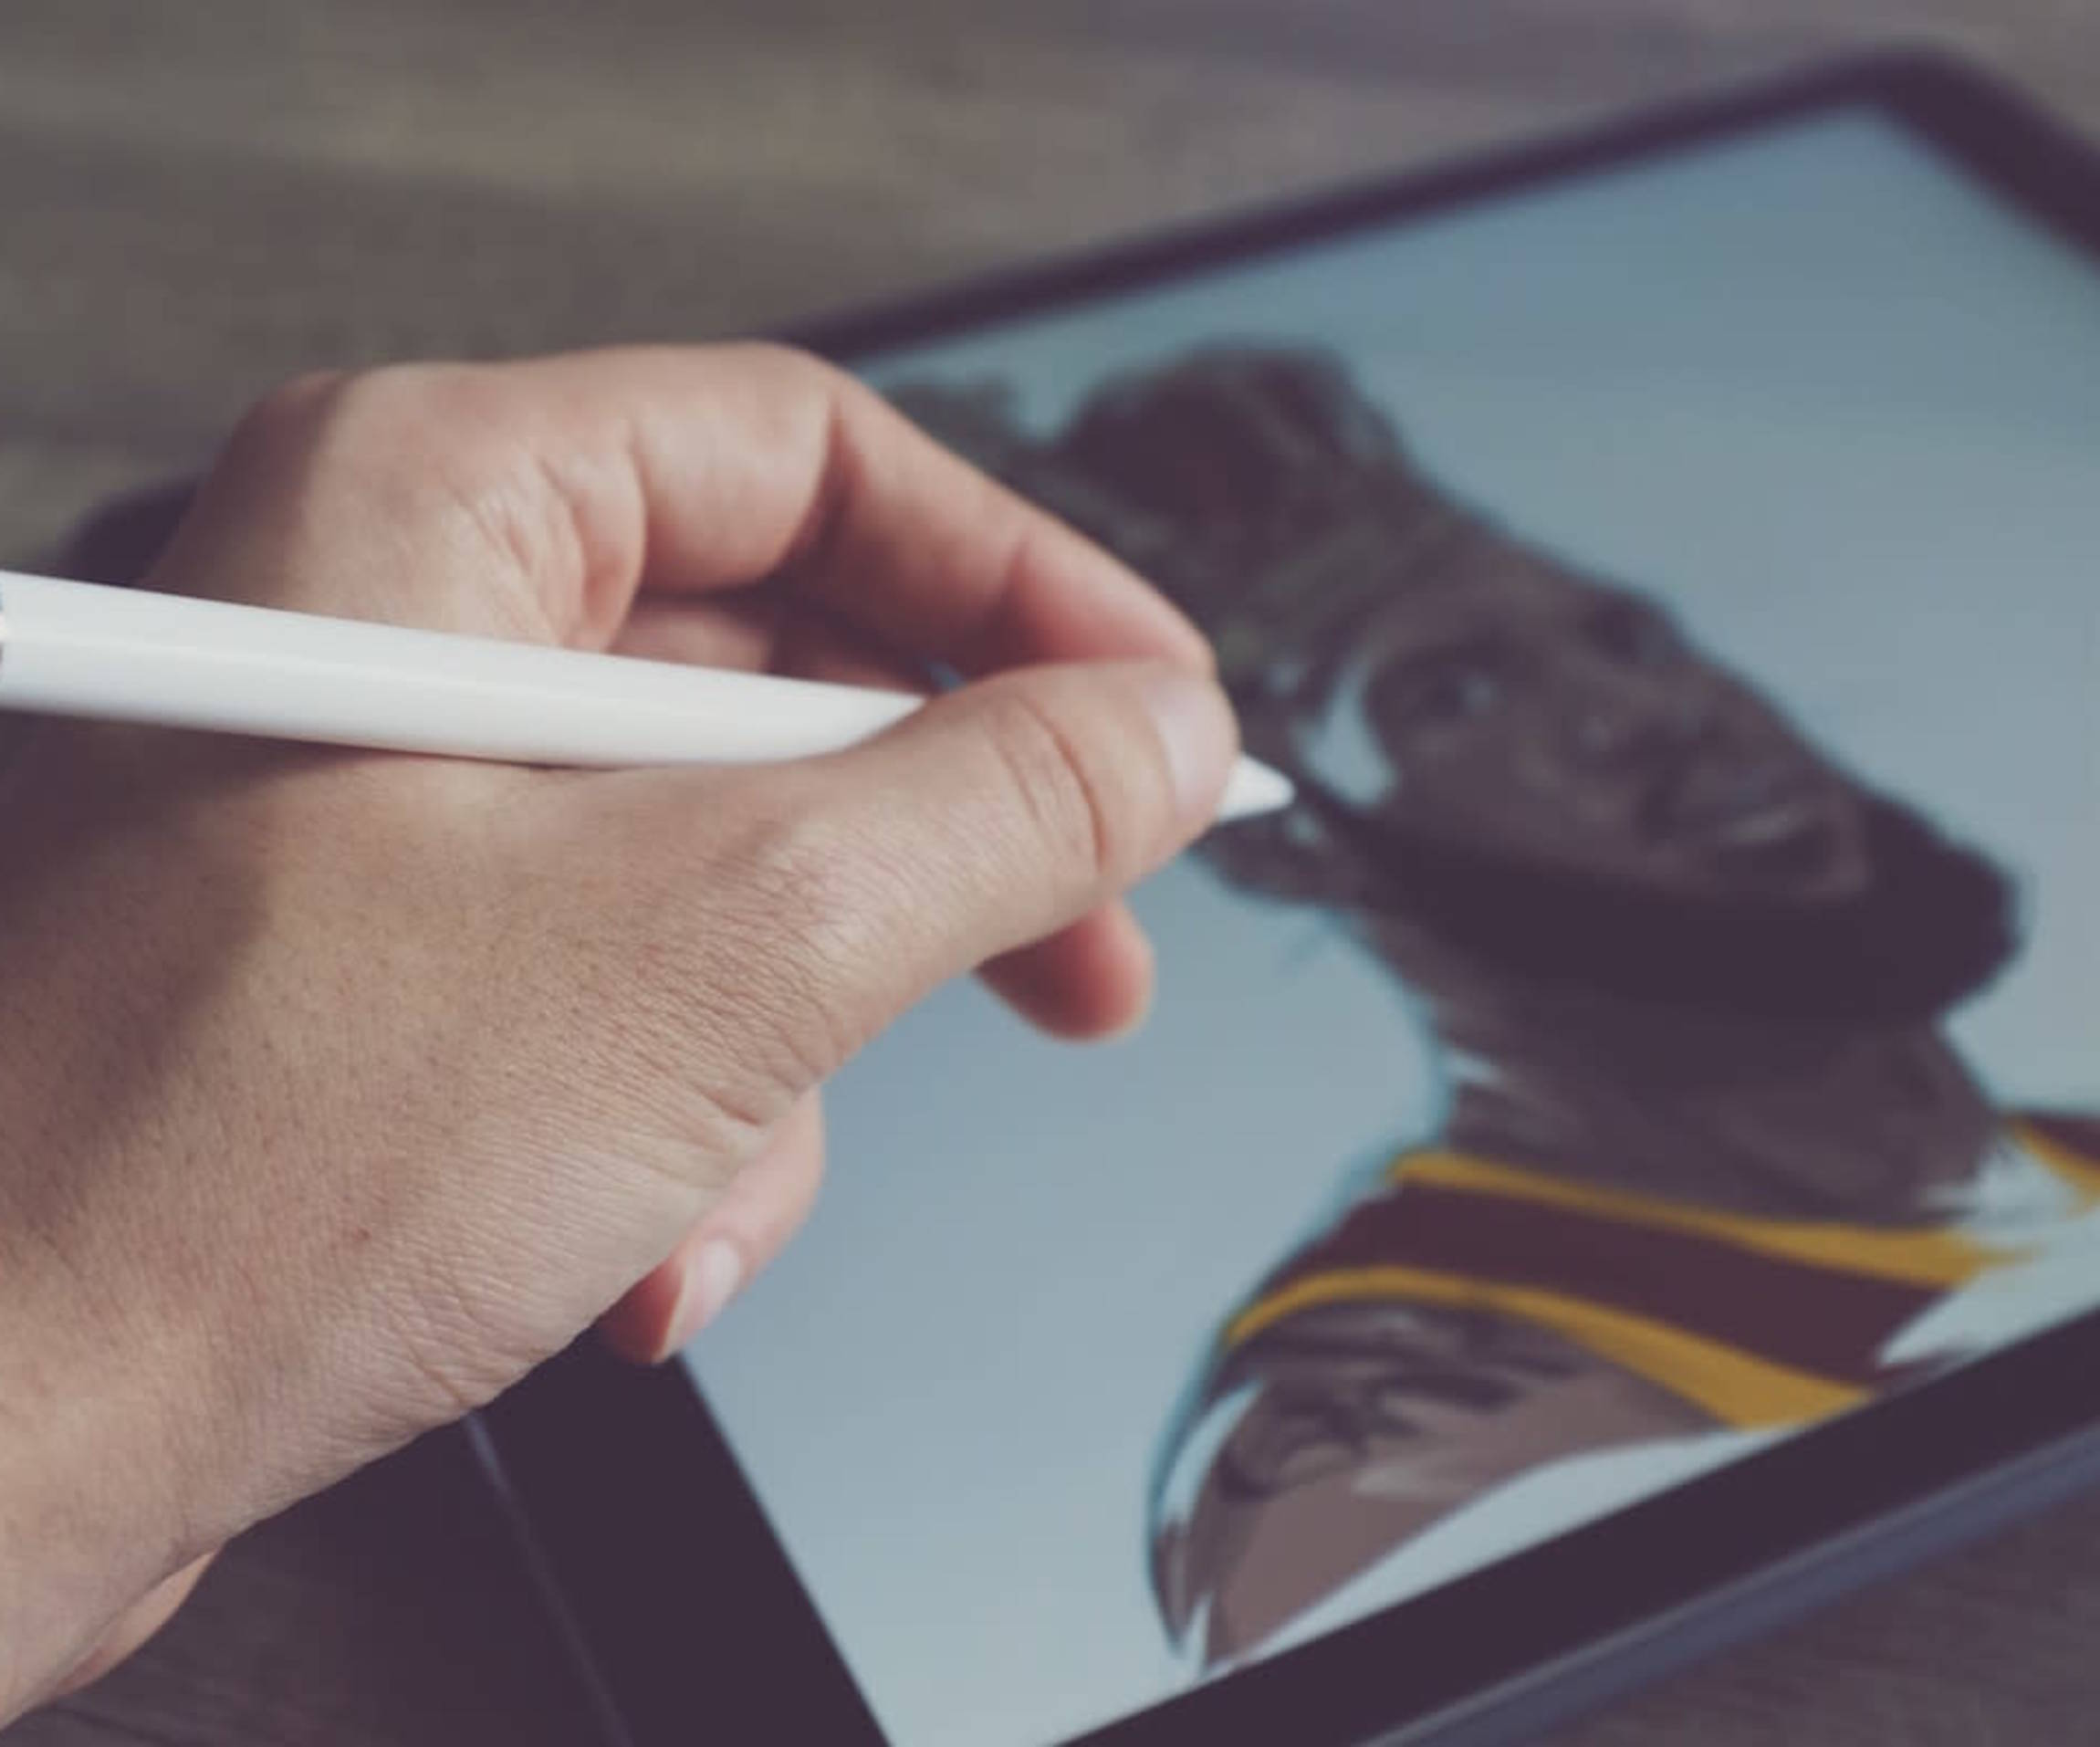 The 34 best drawing apps and art apps for 2018 2019